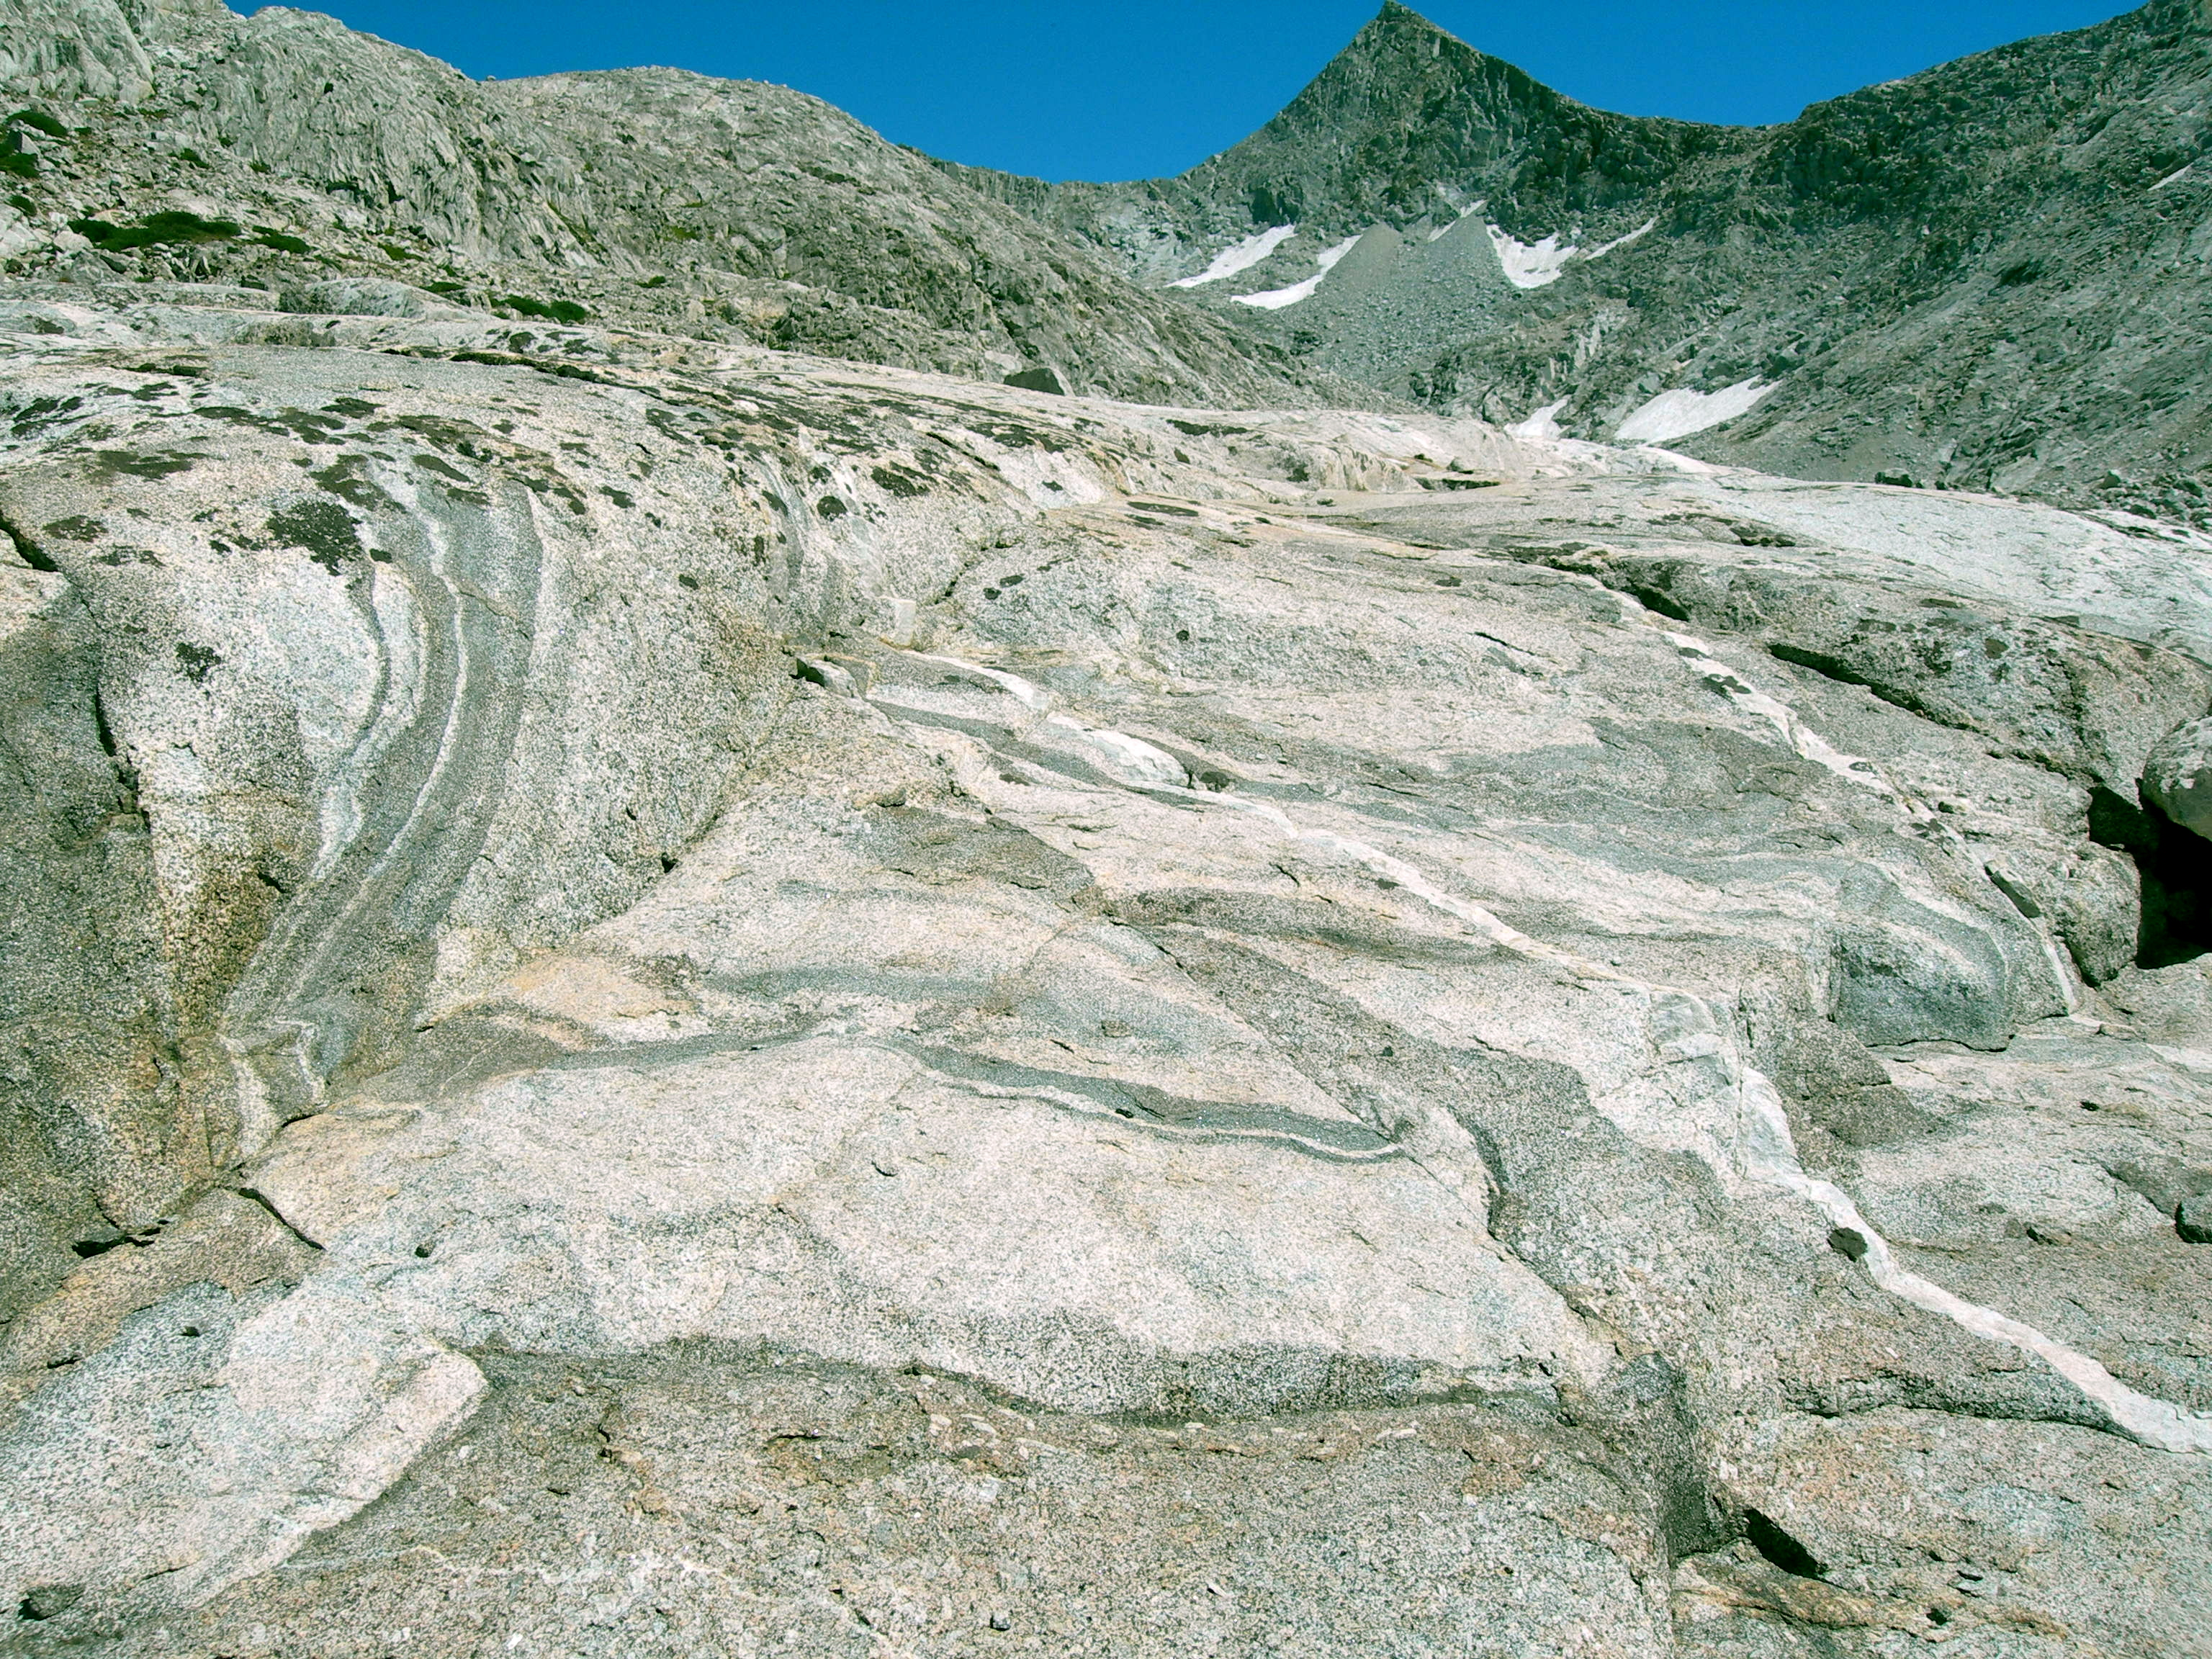 Sheared and faulted region in granite outcrop